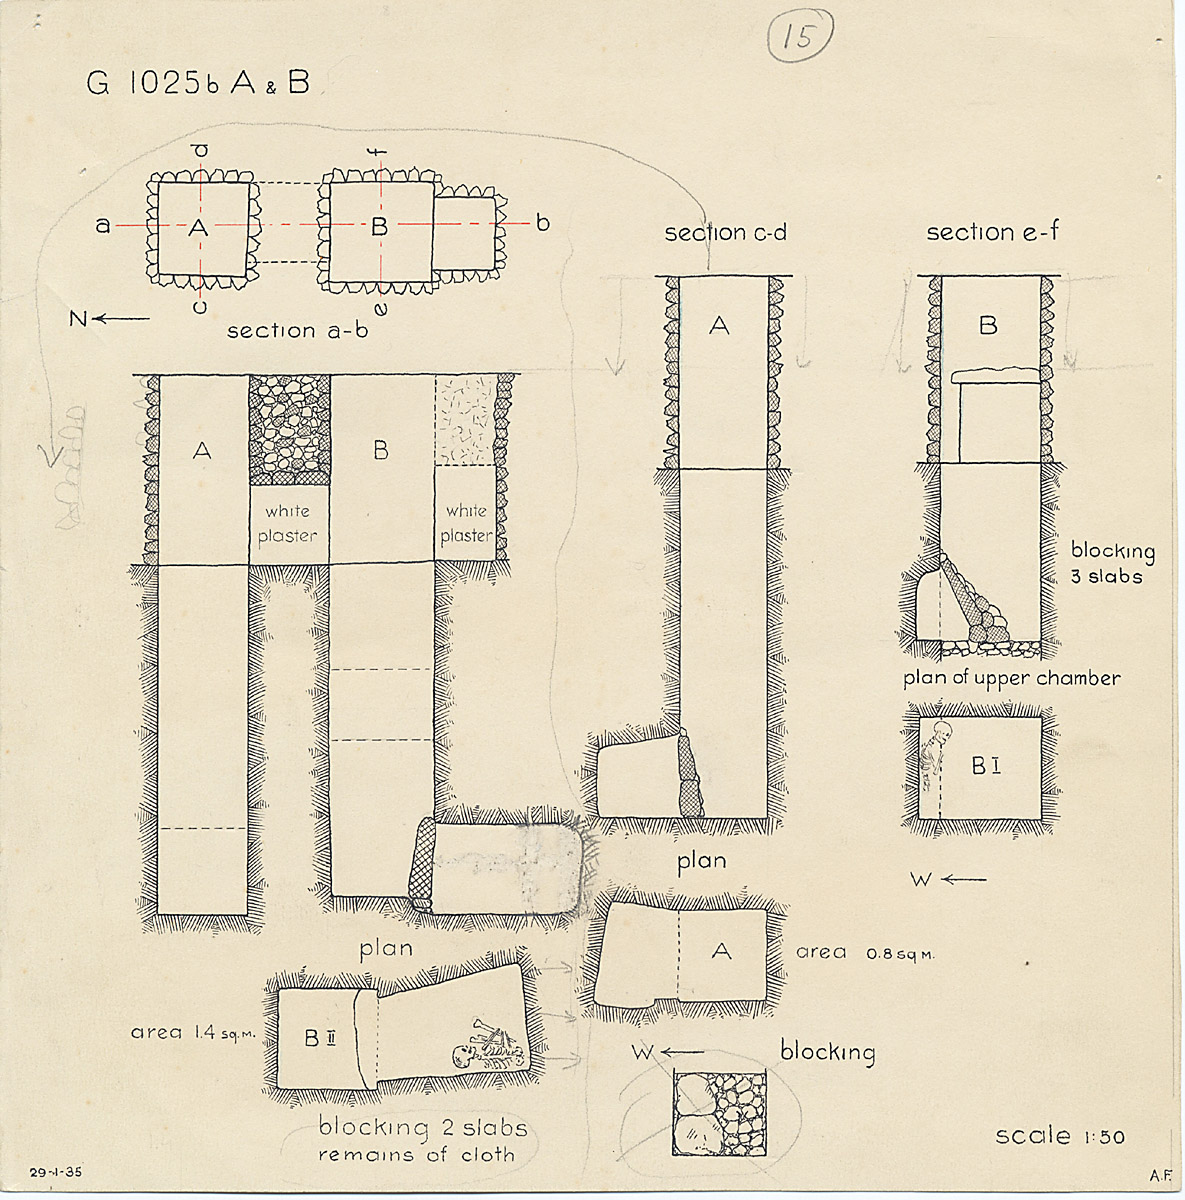 Maps and plans: G 1025b, Shaft A and B